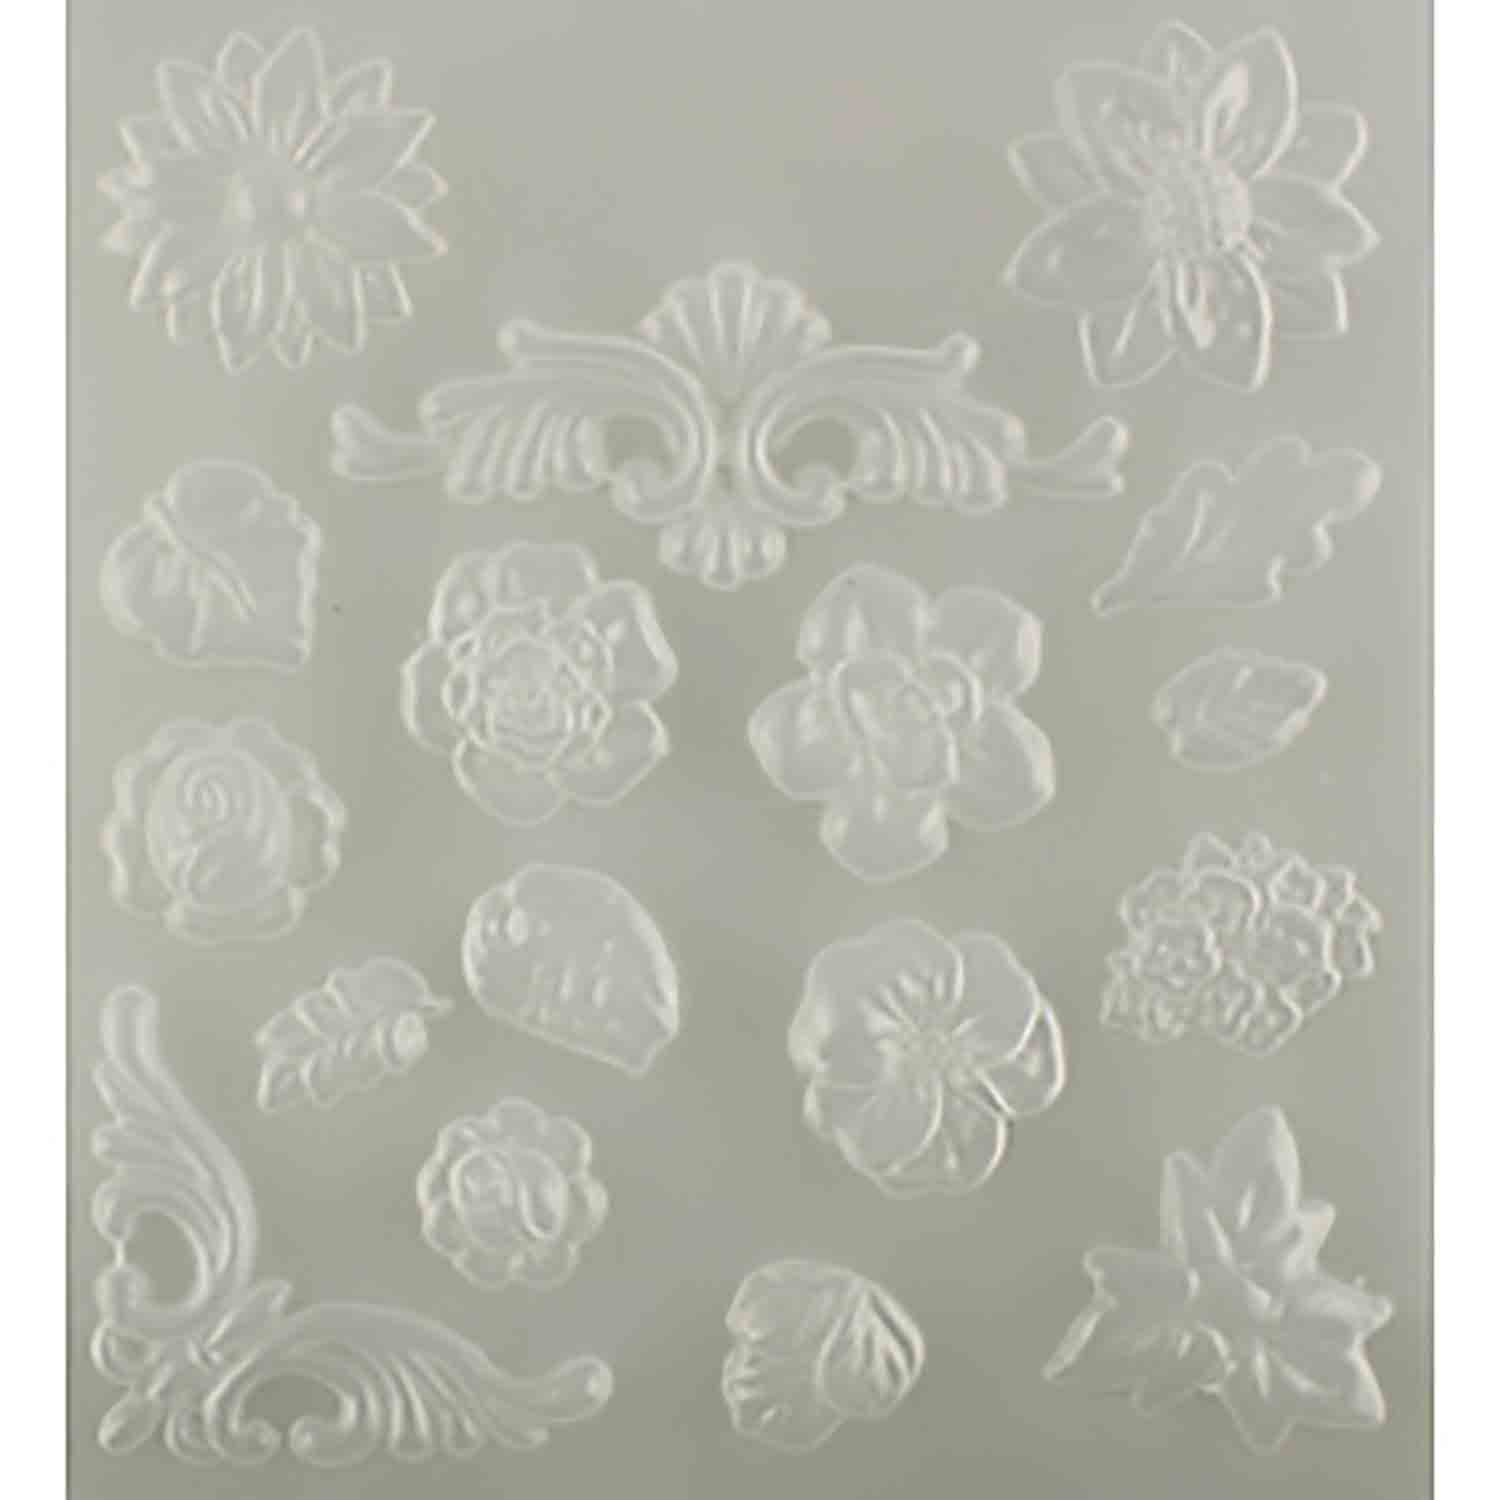 Makin's Push Mold- Floral